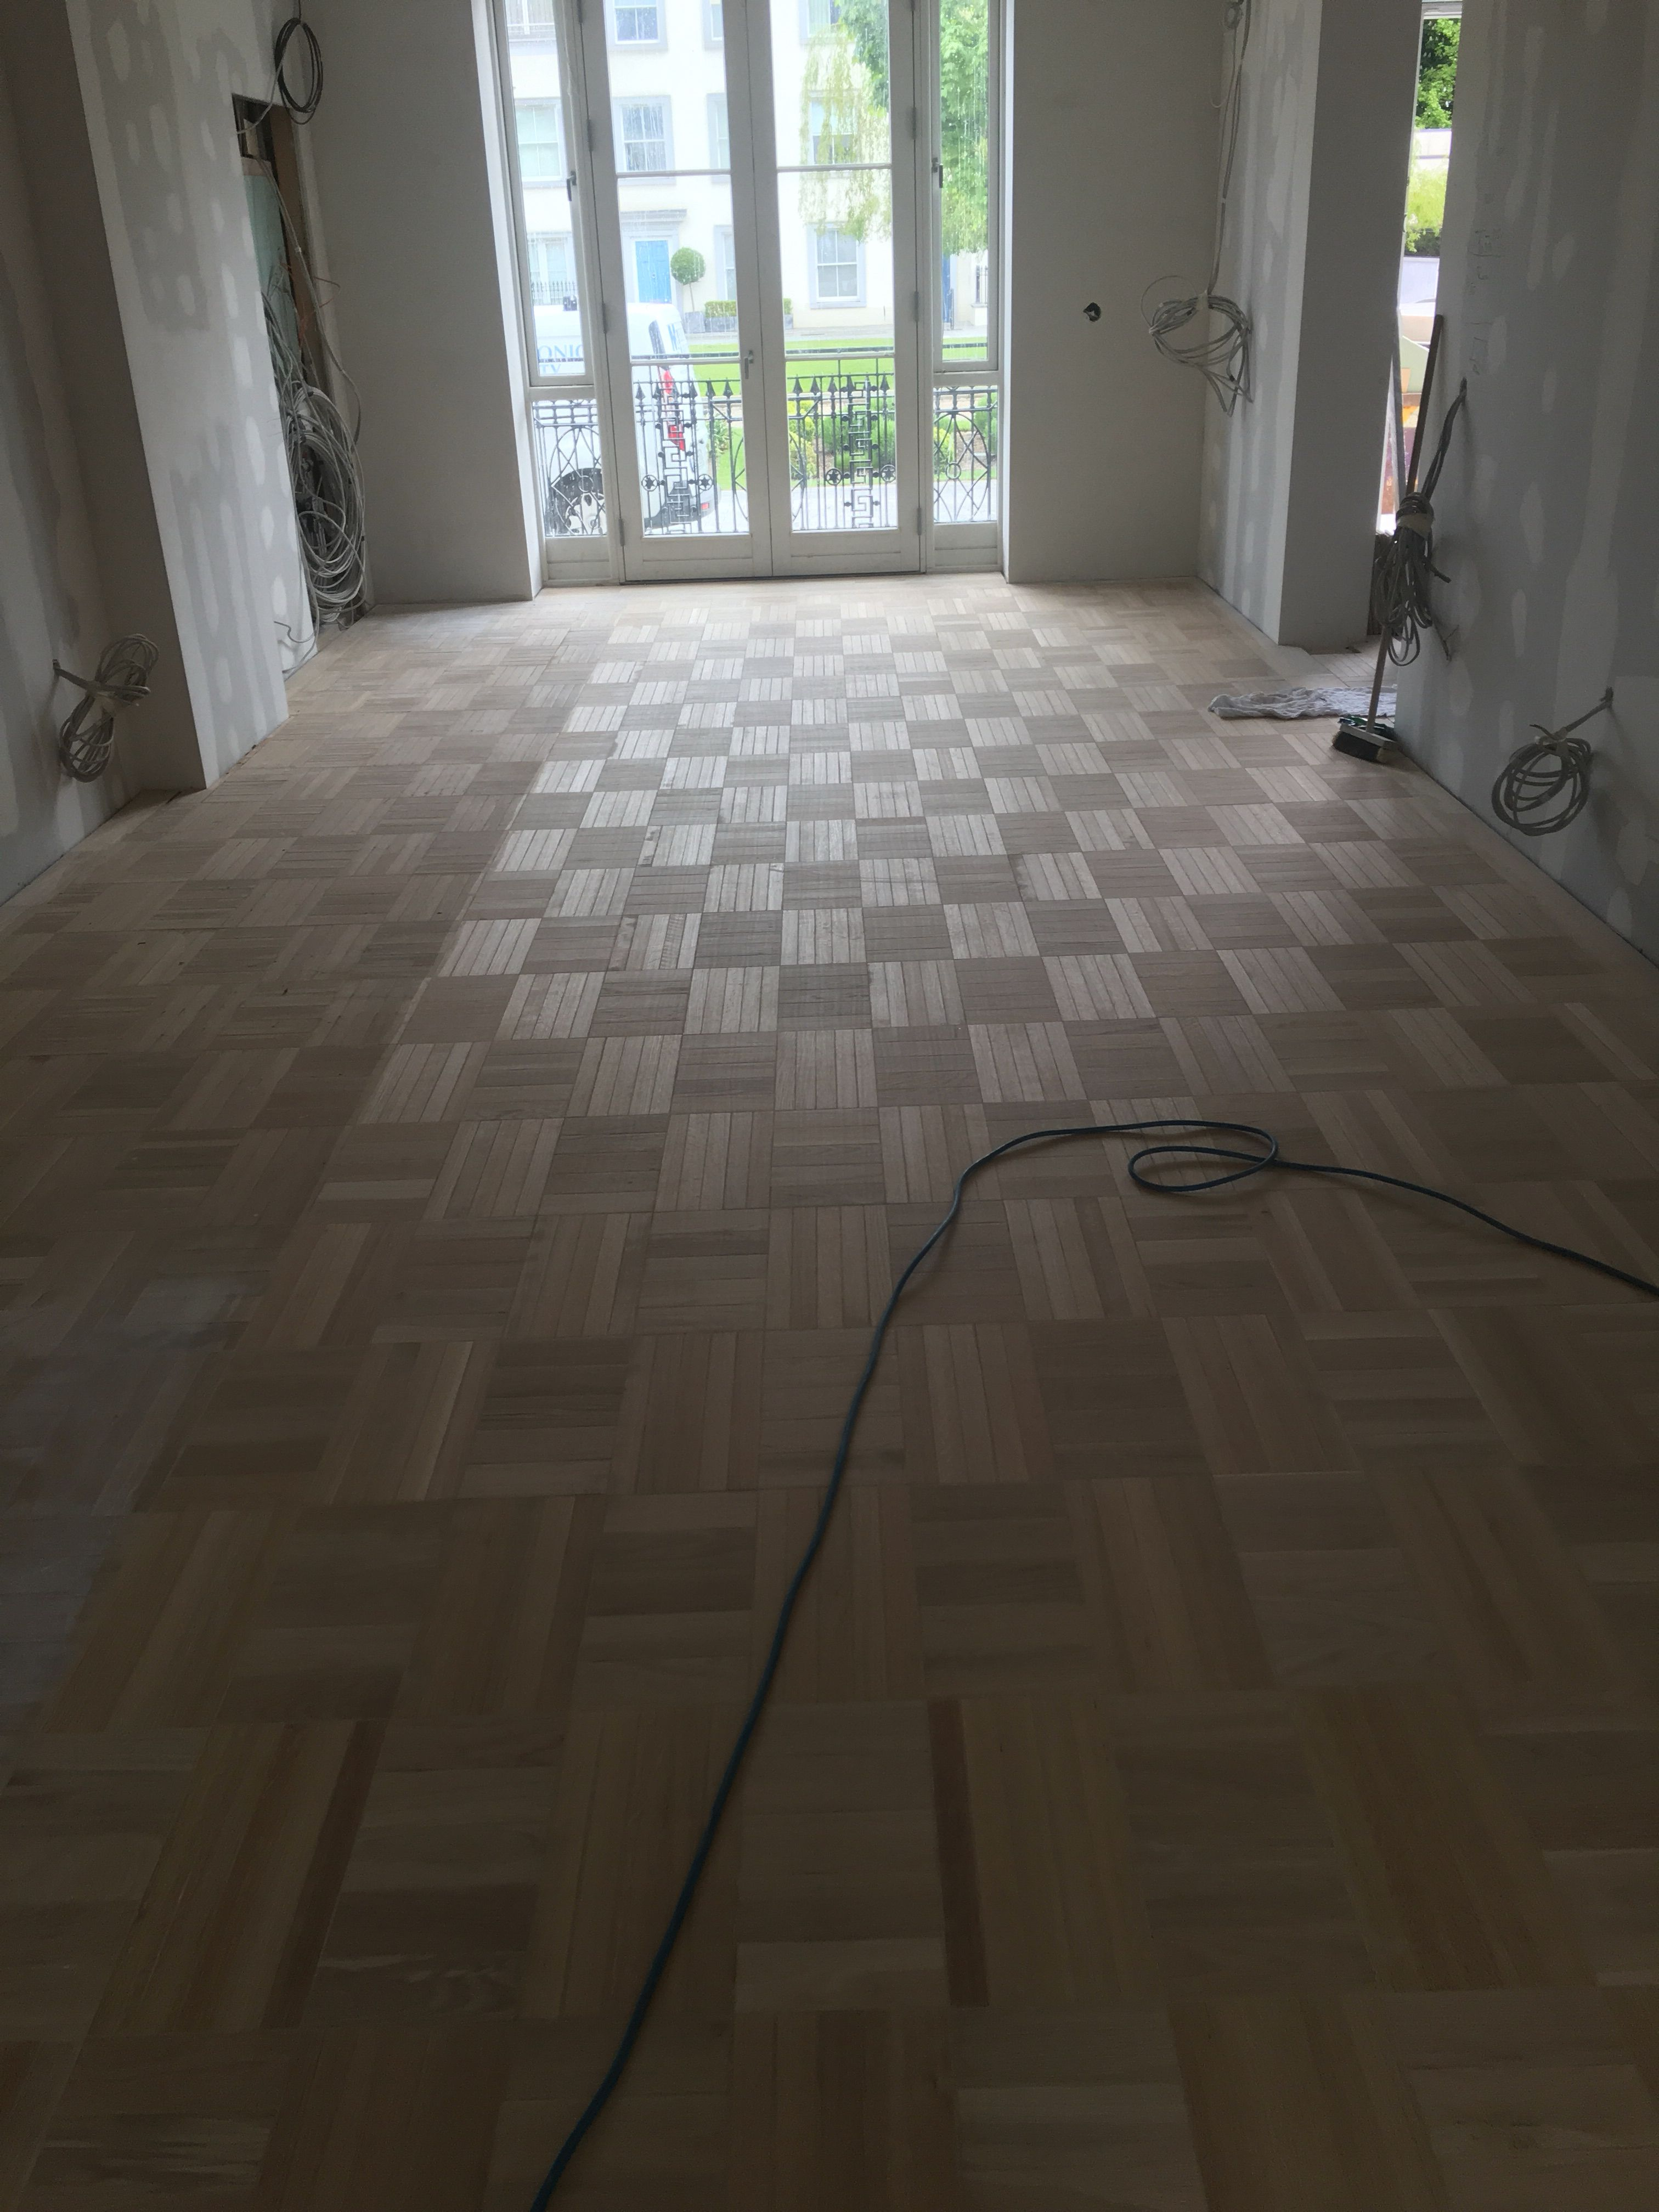 6mm Oak Glued And Pinned Onto 15mm Birch Plywood Hardwood Floors Flooring Birch Plywood